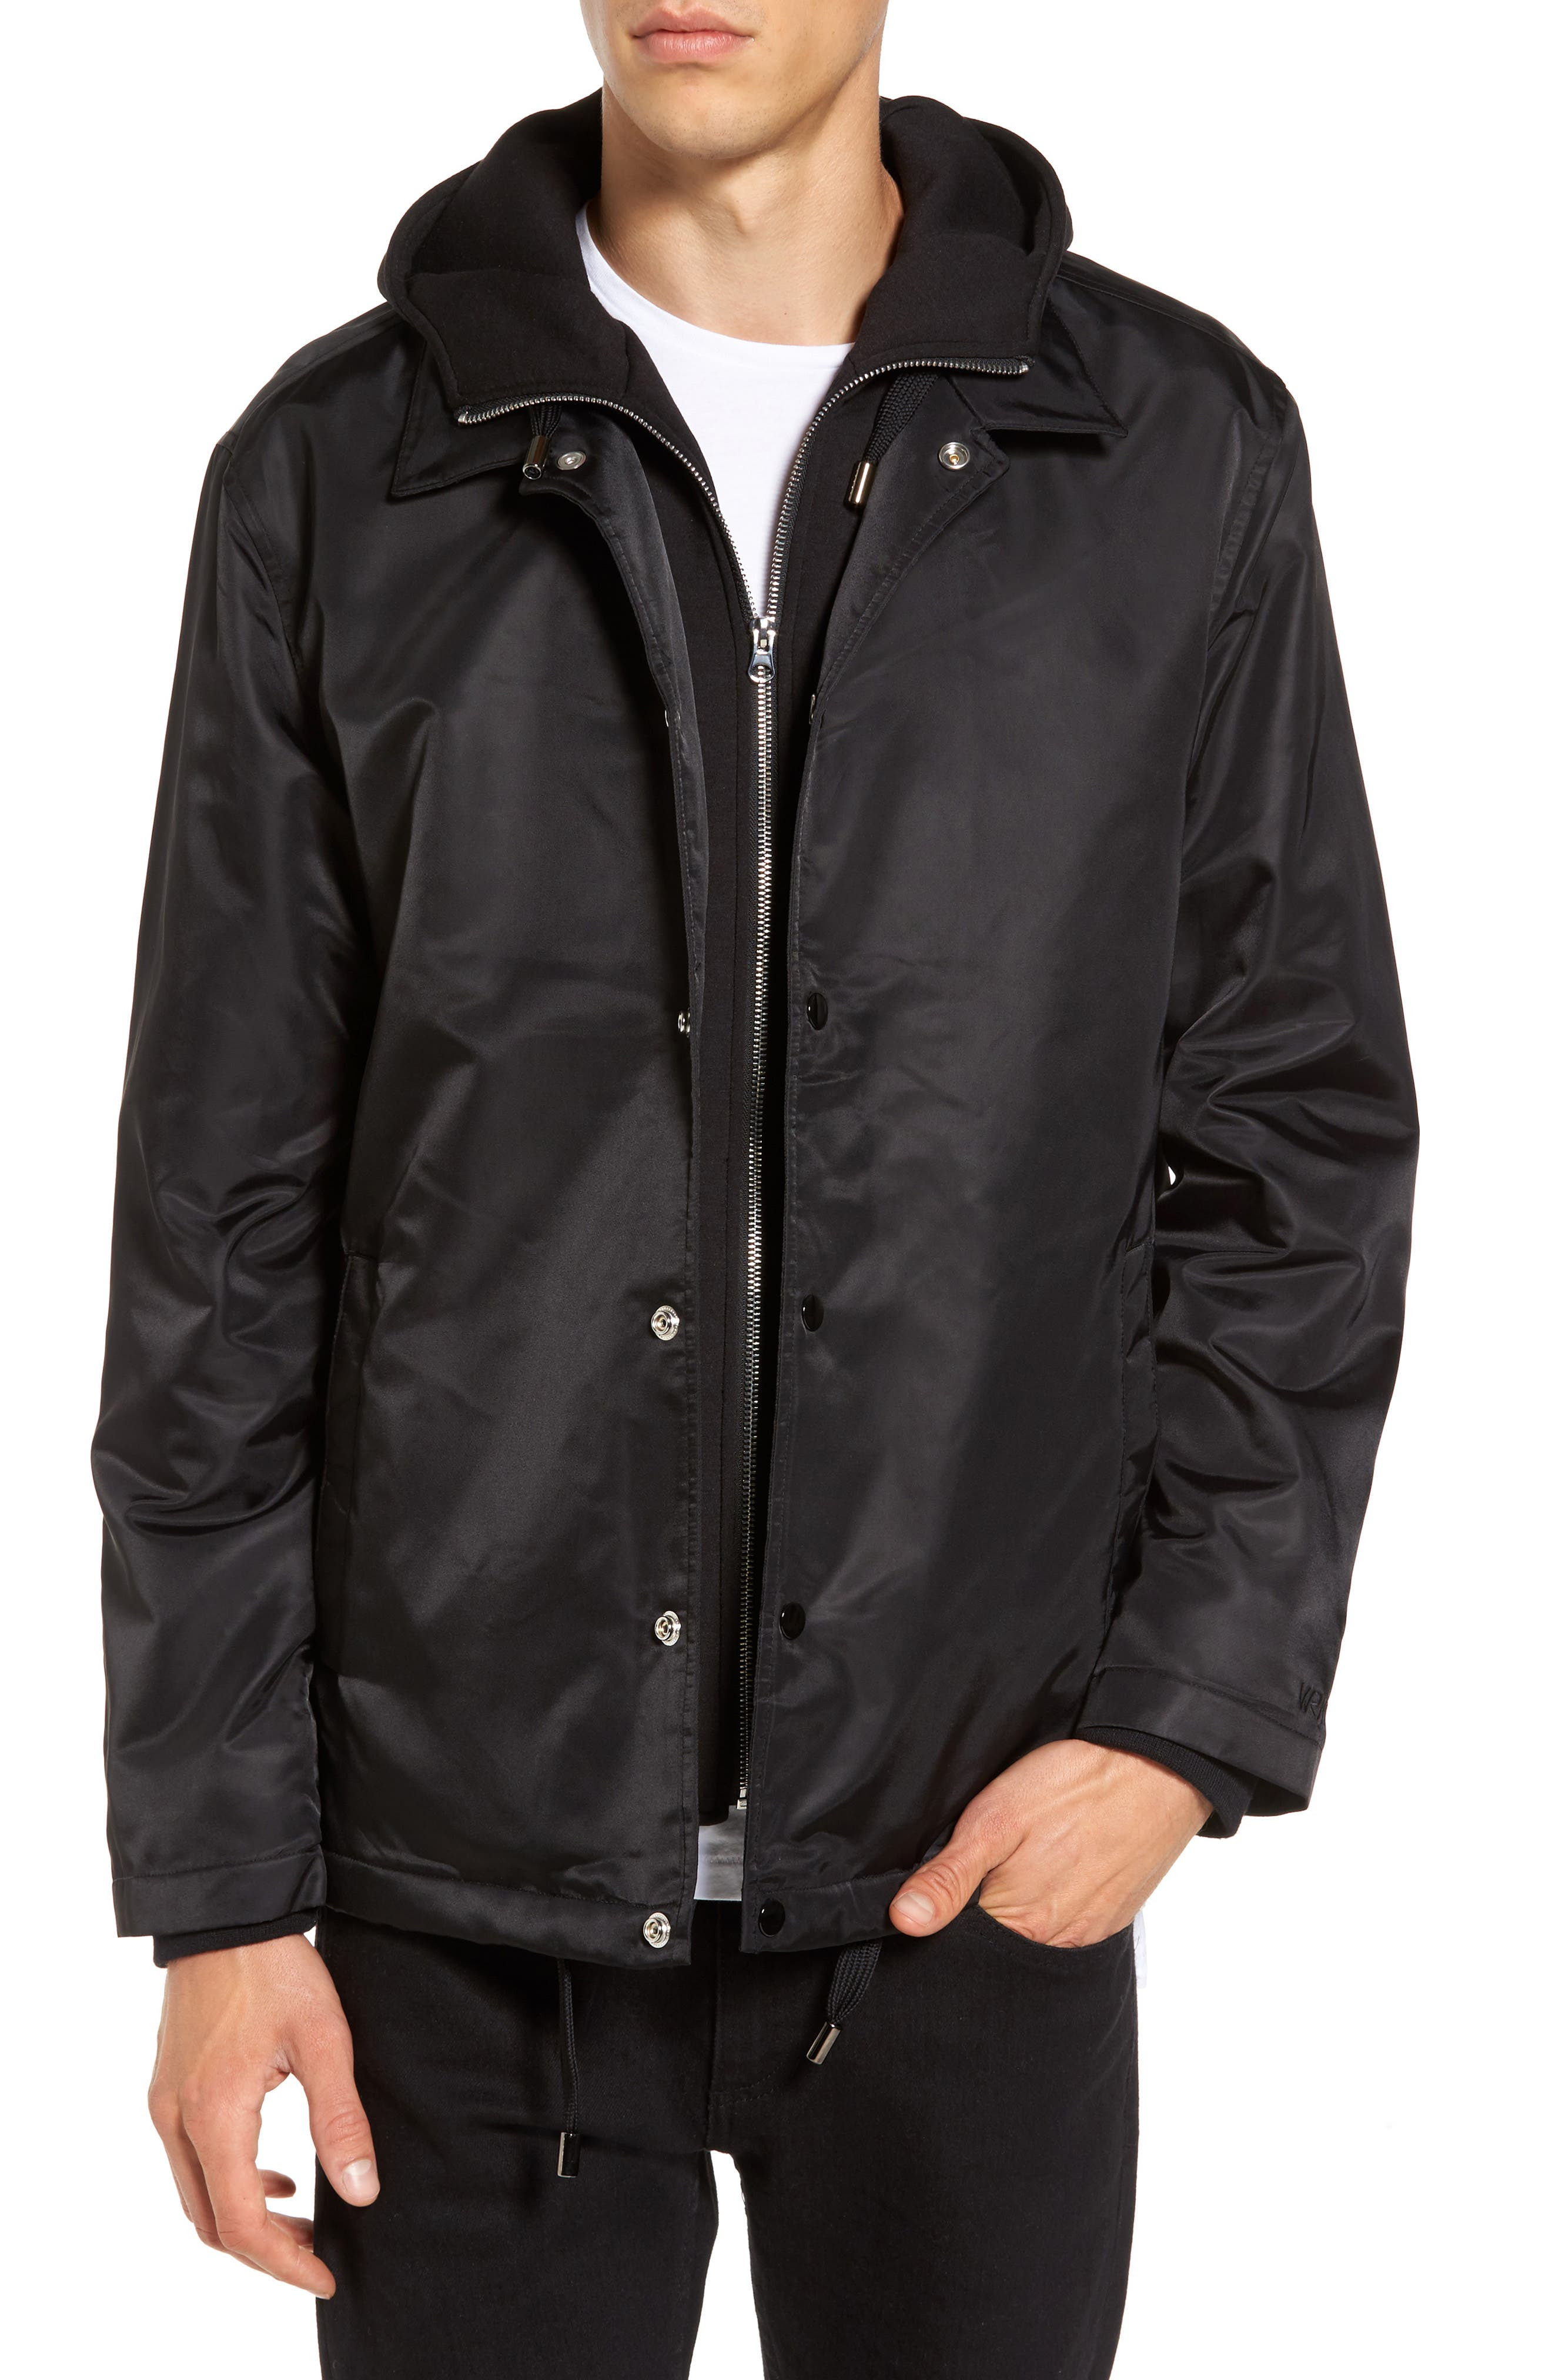 Yorkshire Hooded Coach's Jacket,                         Main,                         color, 001